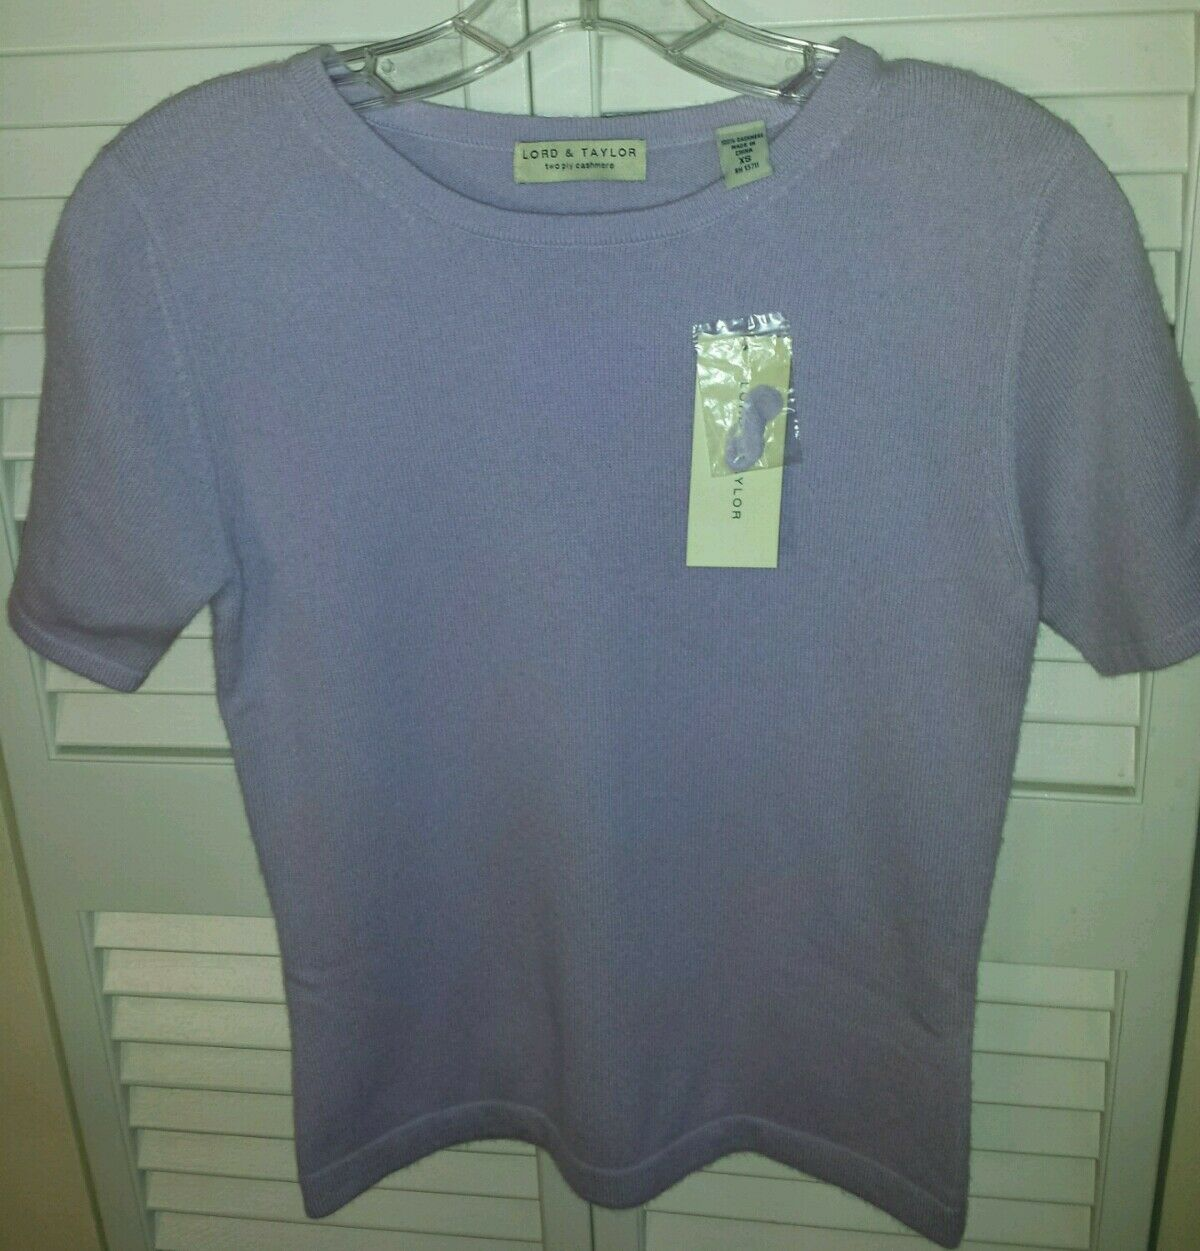 Lord and Taylor 100% 2 ply Cashmere Short Sleeve Sweater in Lavender size XS